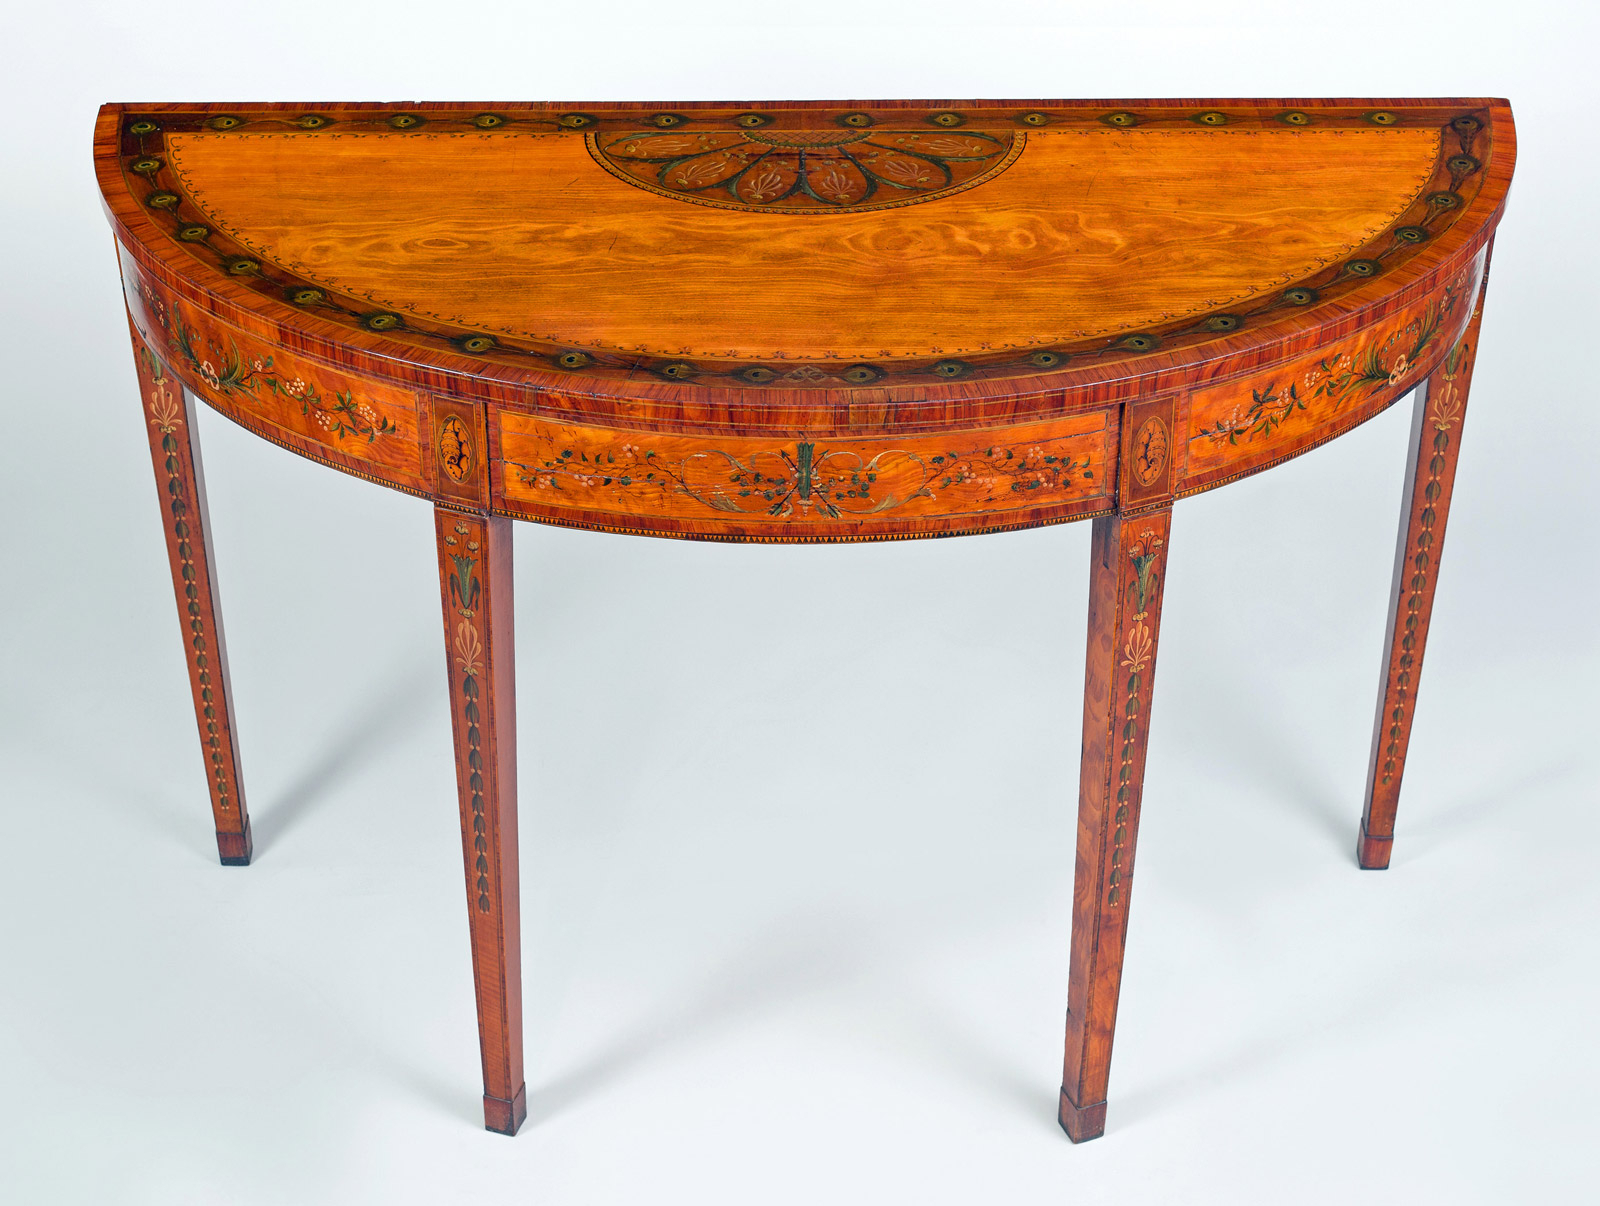 George Iii Inlaid Satinwood D Shaped Console Table With Regard To Orange Inlay Console Tables (View 2 of 20)